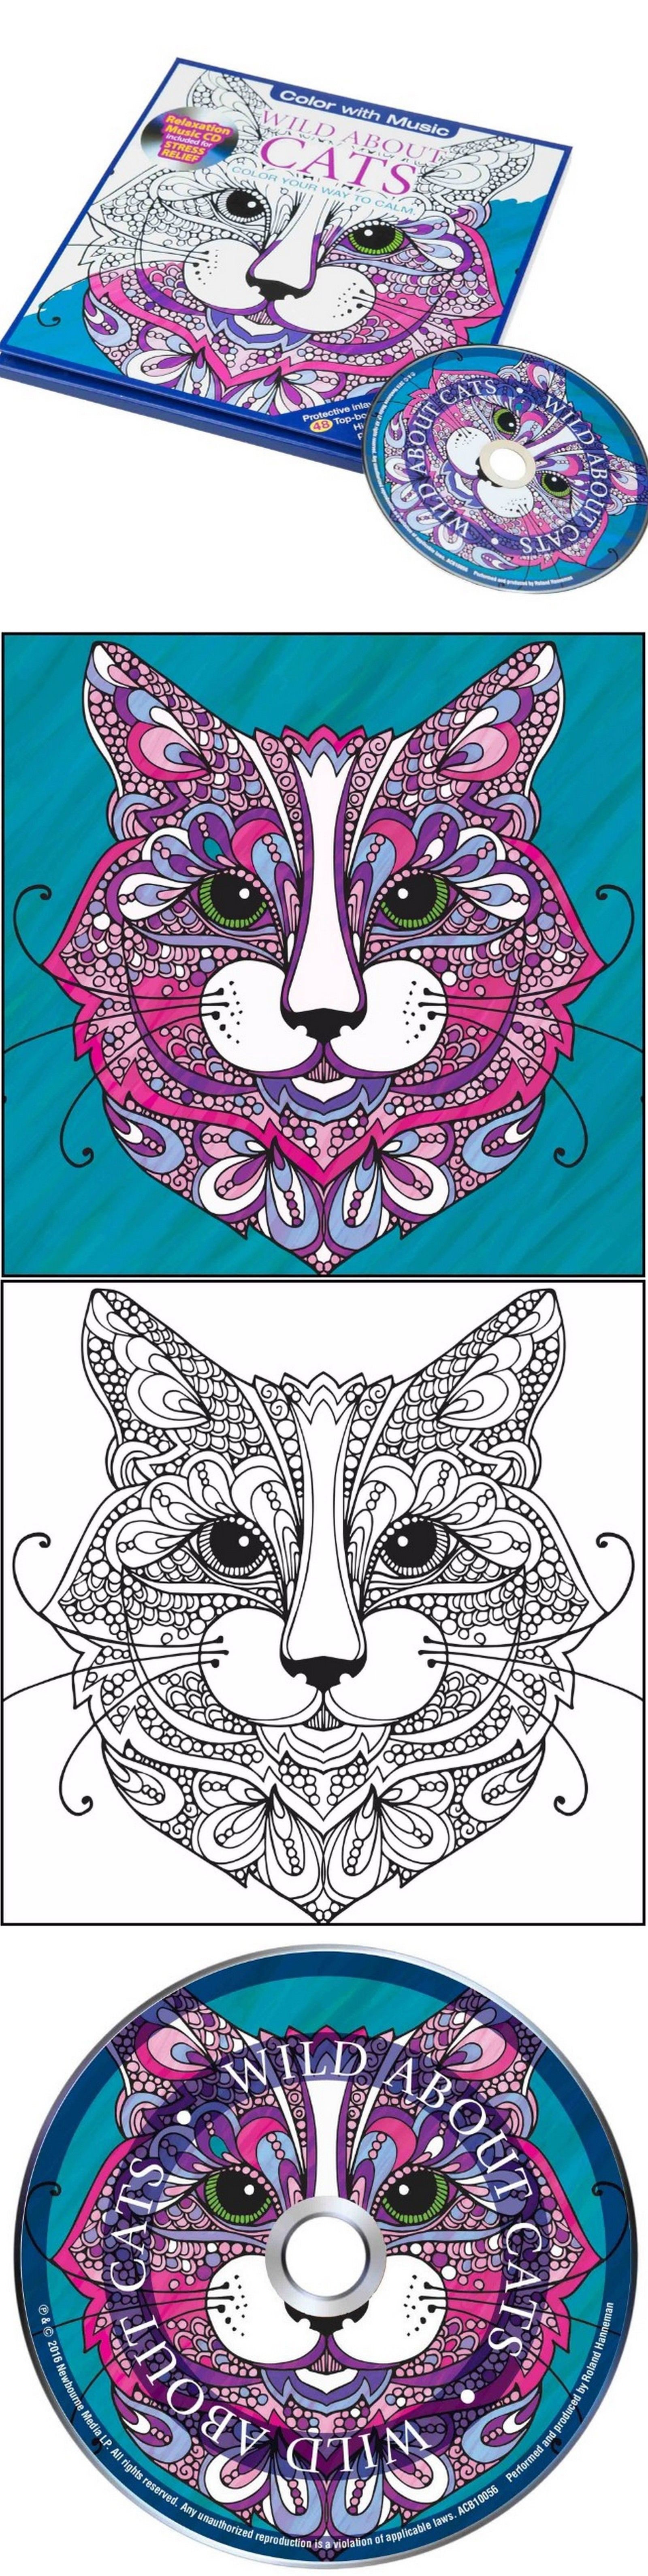 Stress relieving cats coloring - Instruction Books And Media 160640 Coloring Art Book New Cats Adult Stress Relieving Relaxing Design